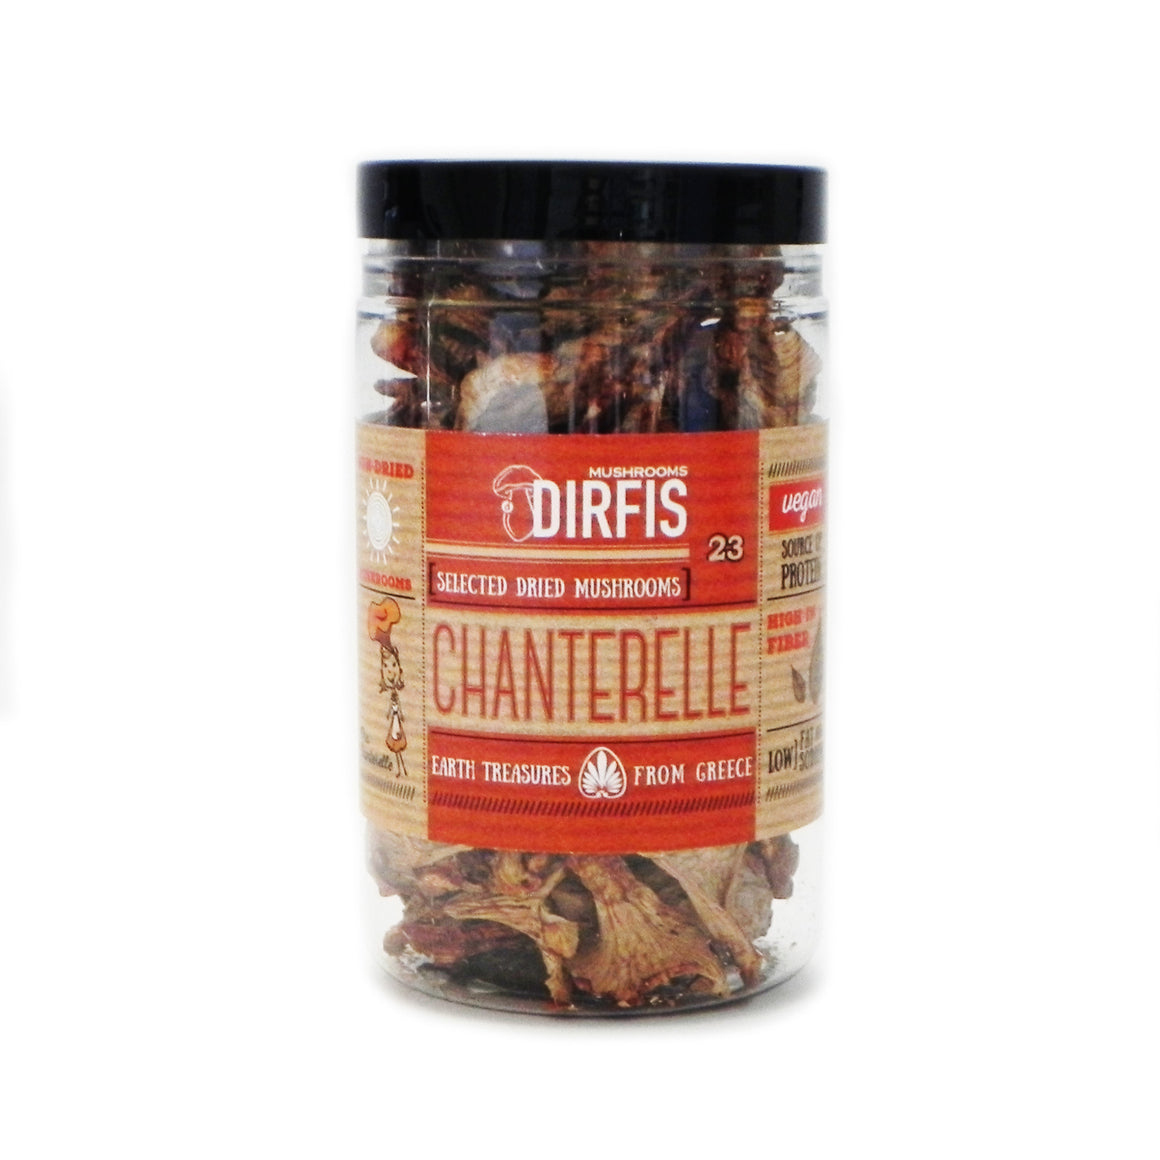 'Dirfis' Cantharelles dried Mushrooms - 30g